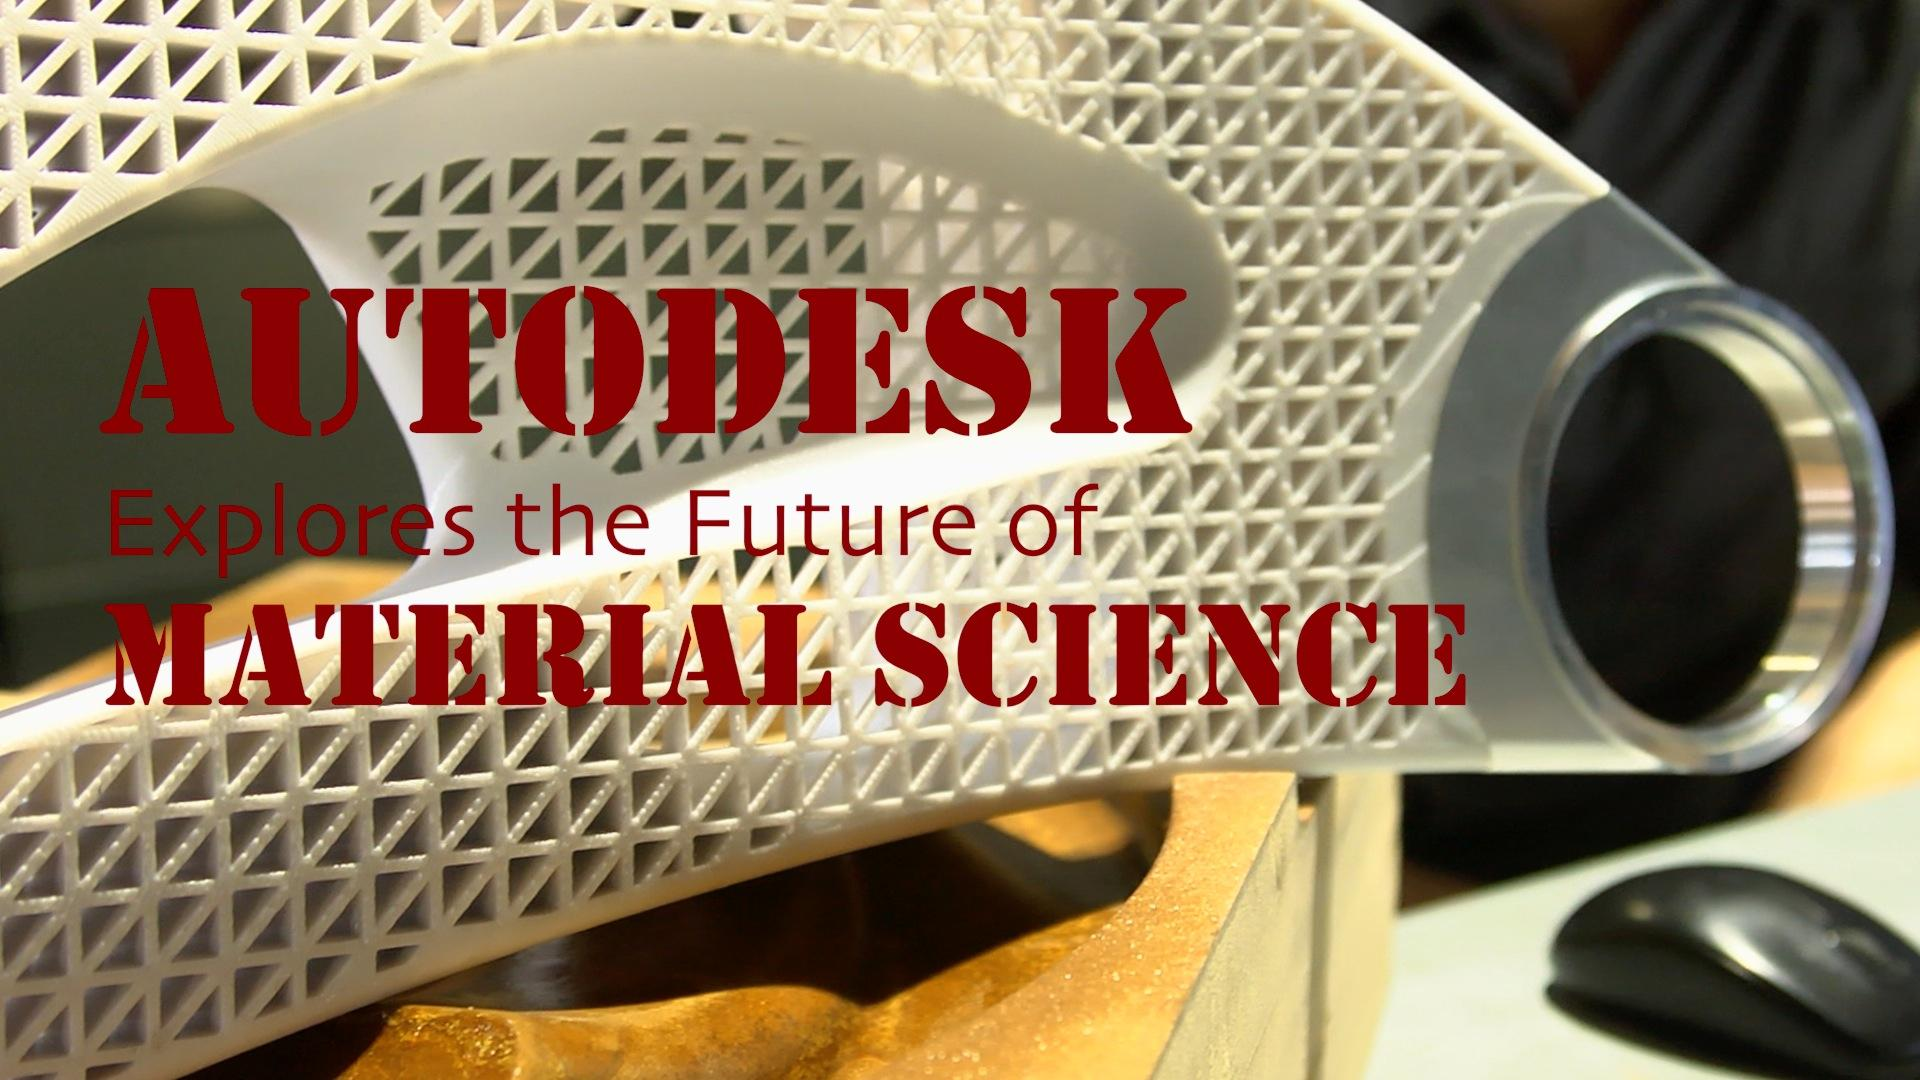 Autodesk Explores the Future of Material Science